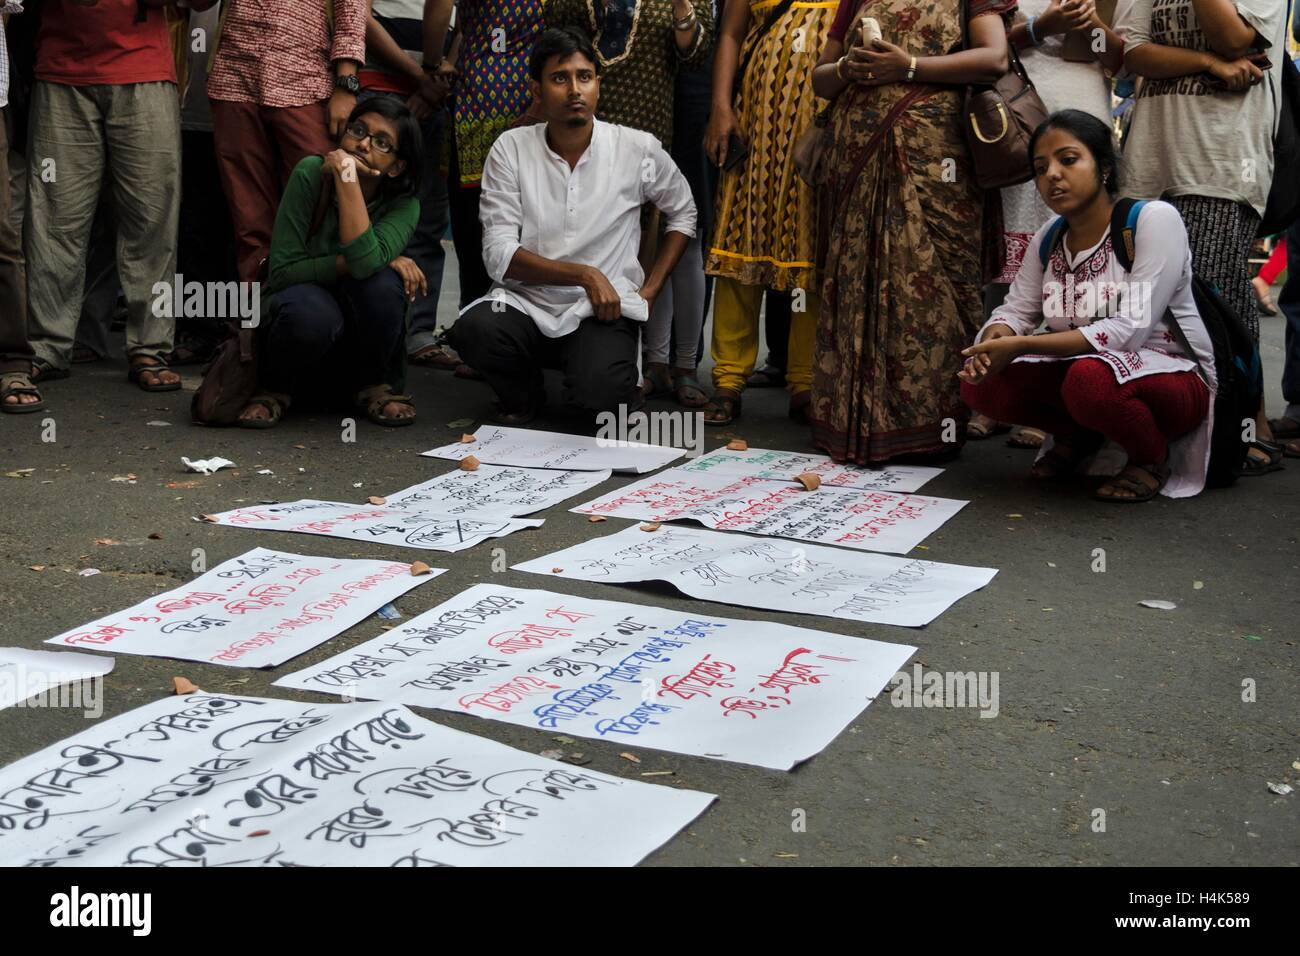 Kolkata, West Bengal, India. 17th Oct, 2016. Caption: On 17th October 2016 evening a protest by the students of - Stock Image